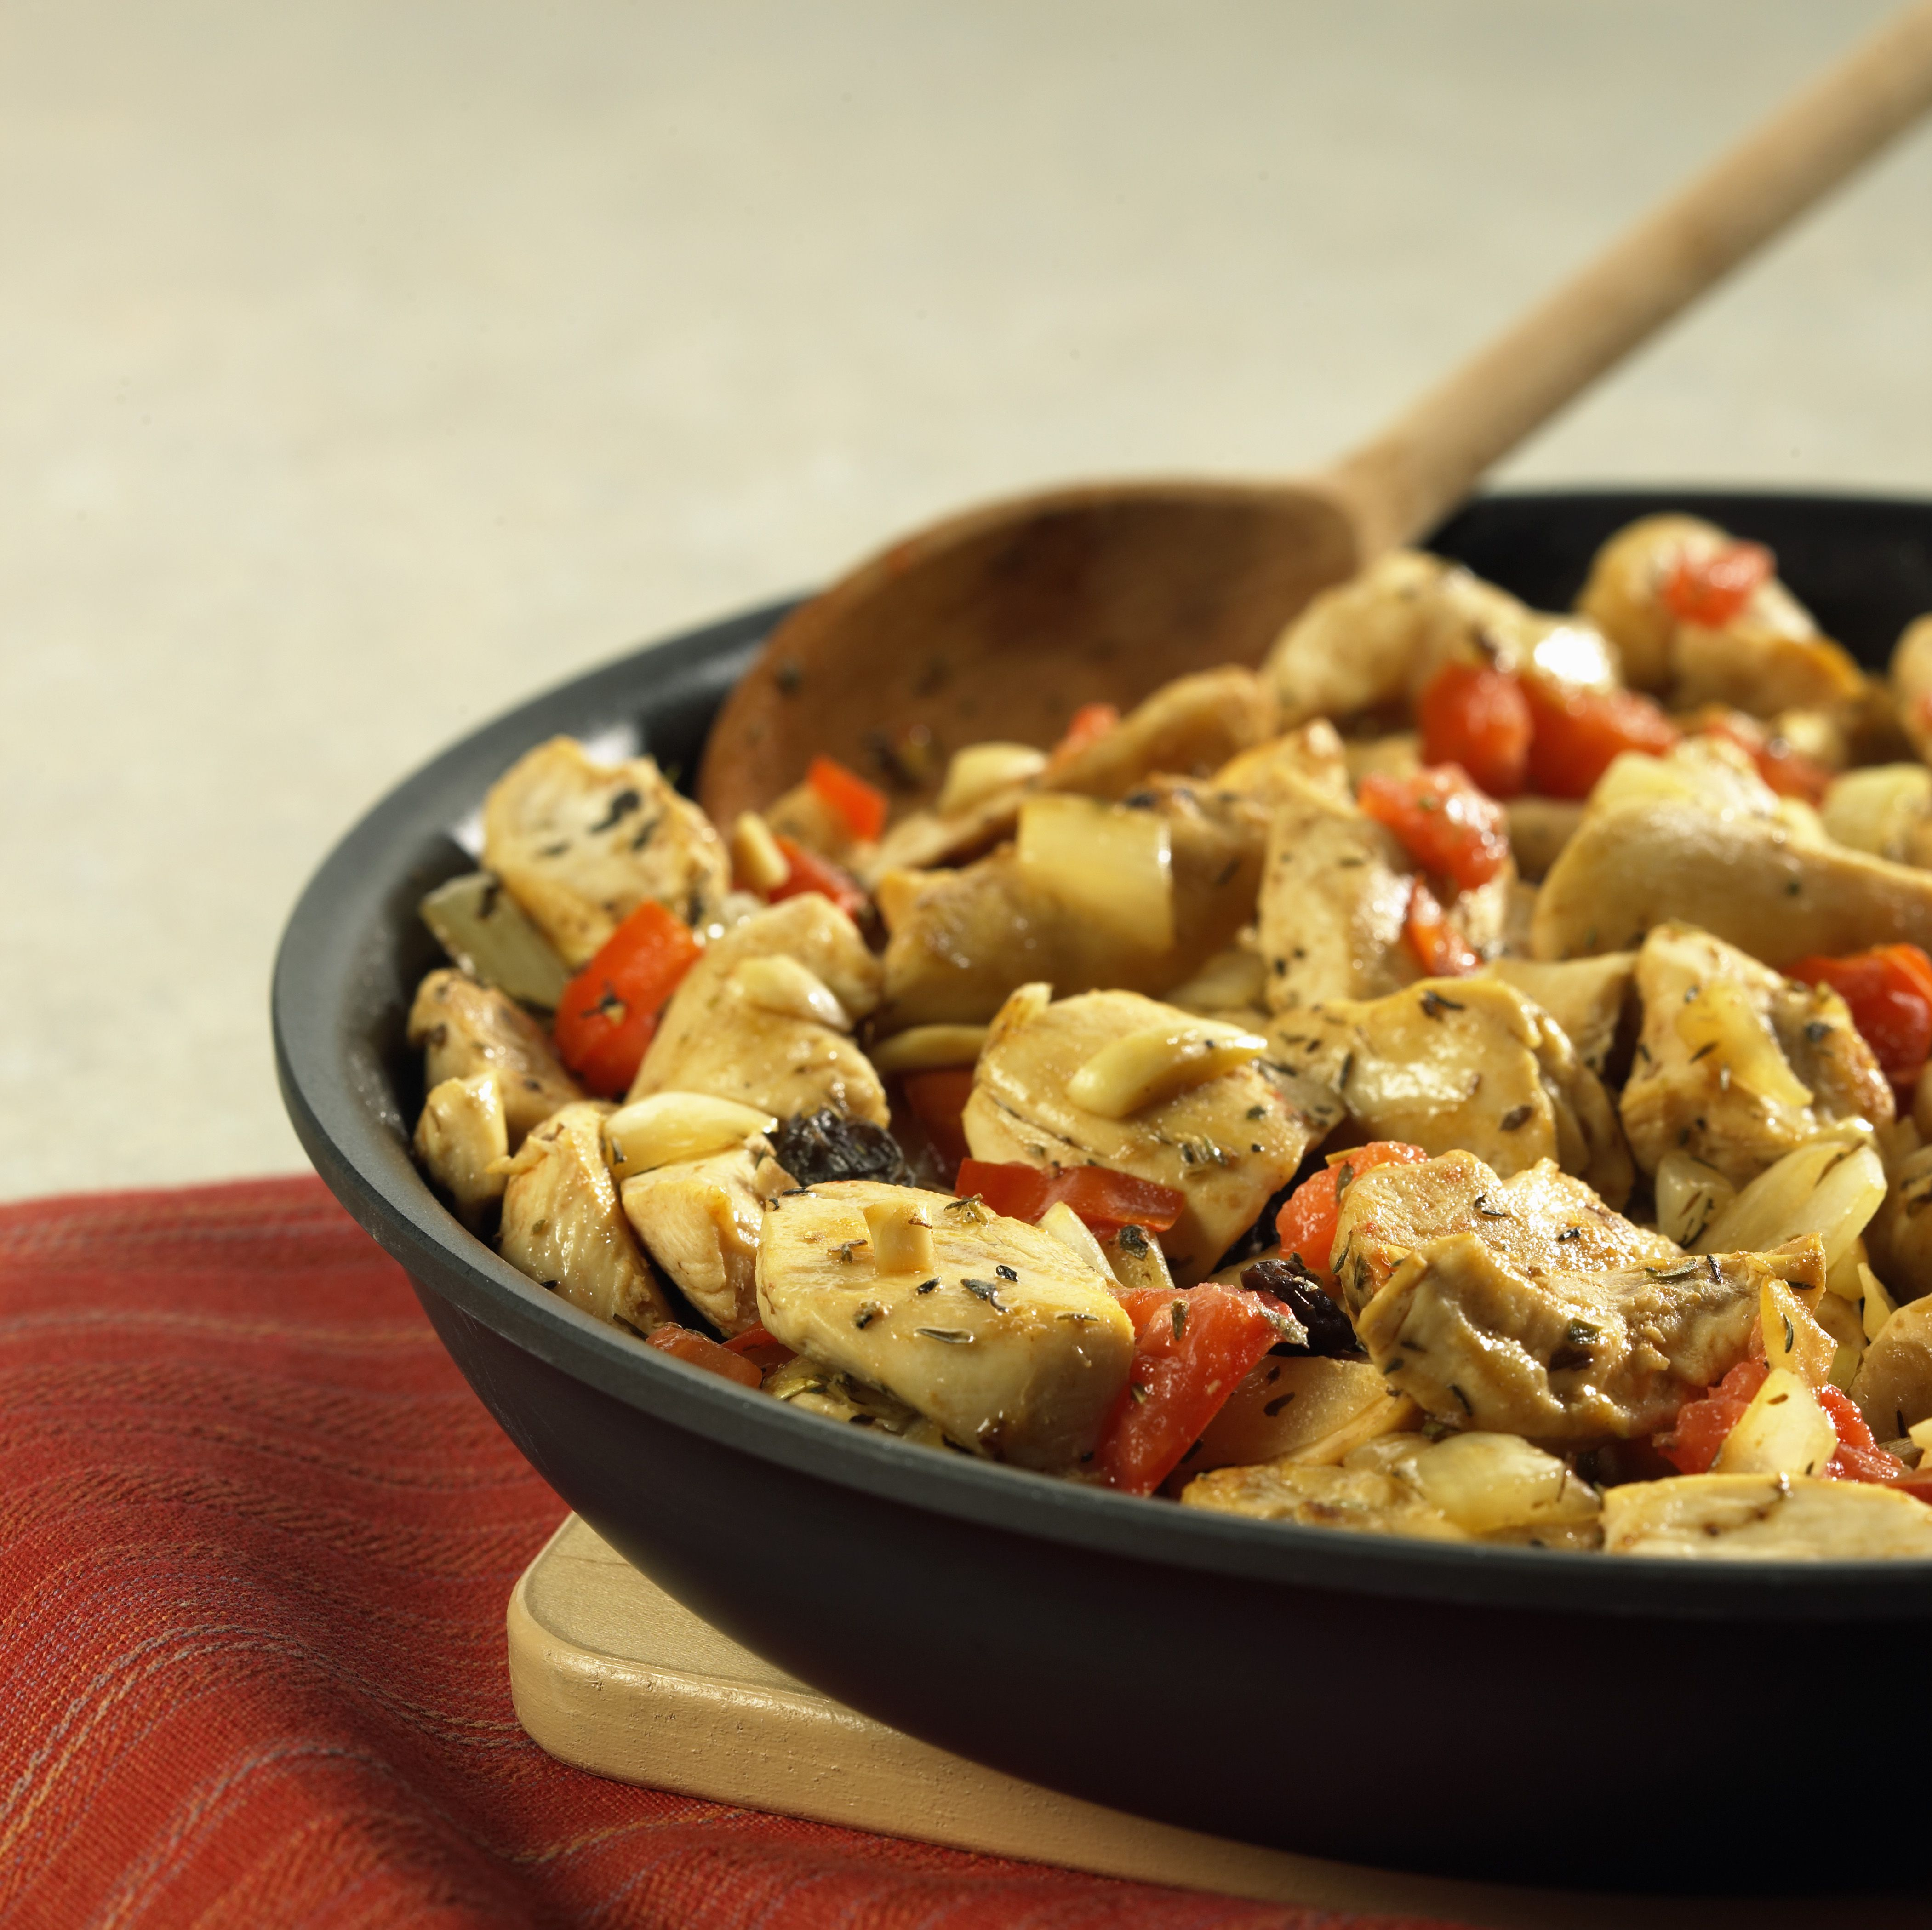 Close-up of sauteed chicken in a pan